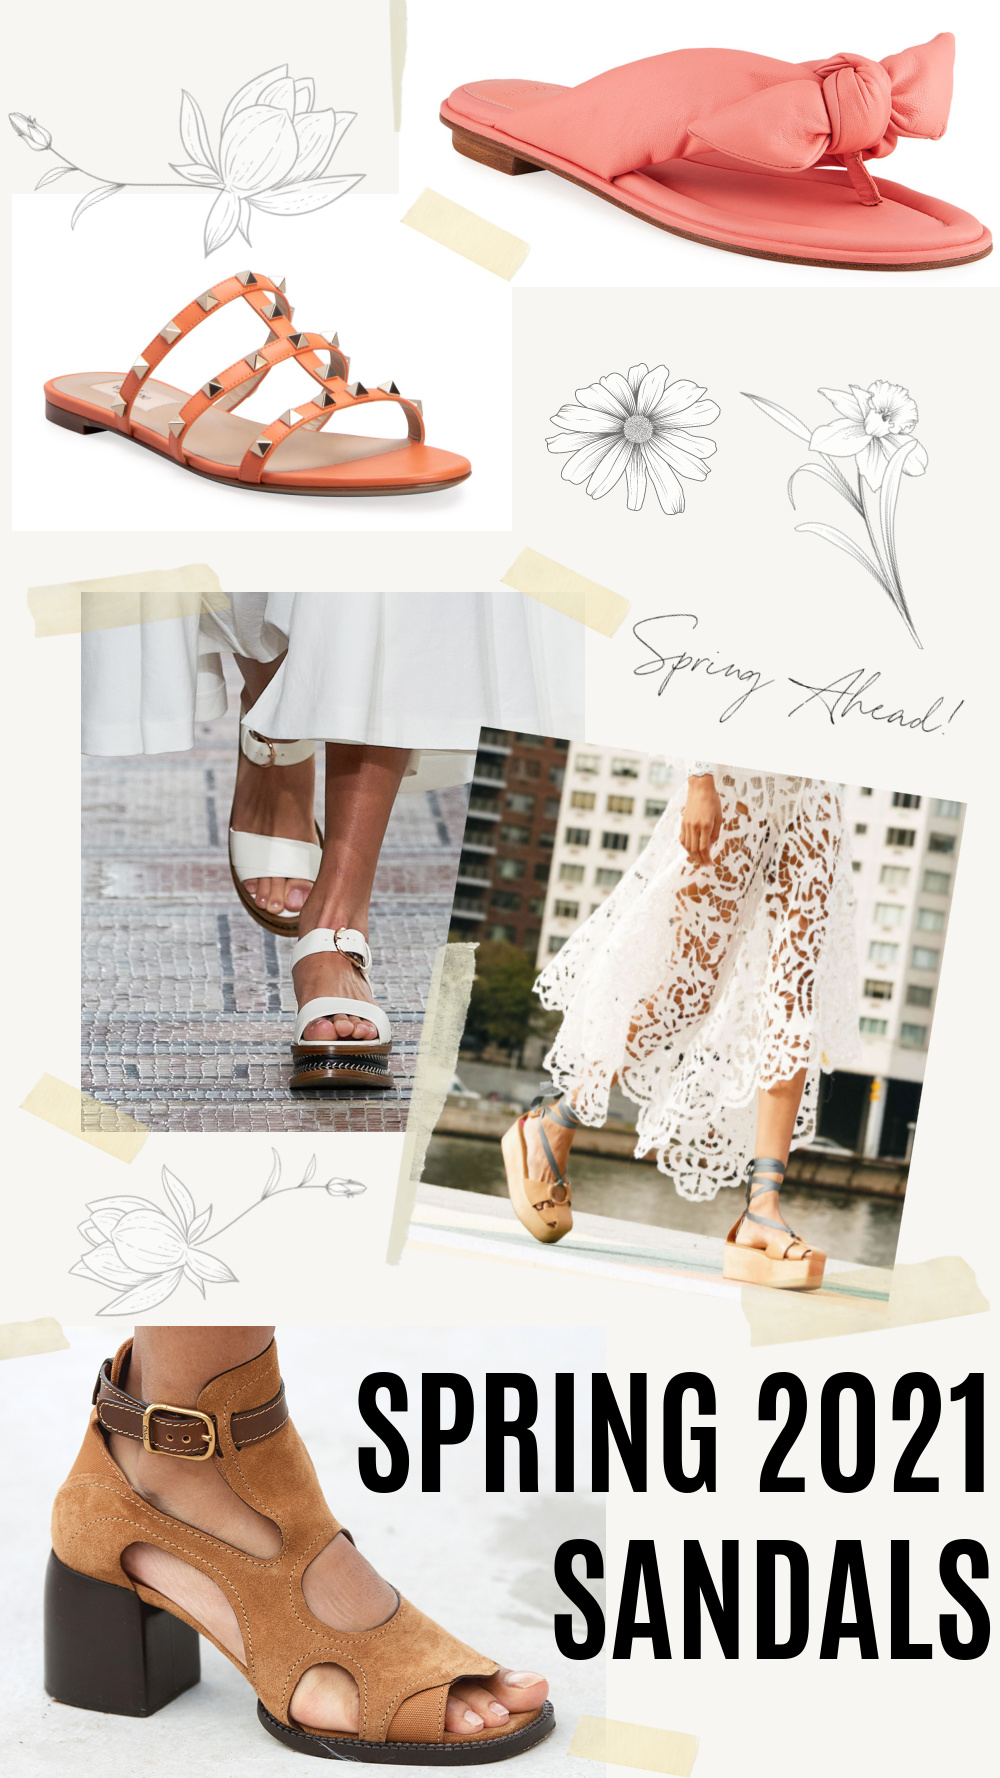 Best Spring 2021 Sandals I Valentino, Ulla Johnson, Chloe and More! #springstyle #fashionstyle #fashionista